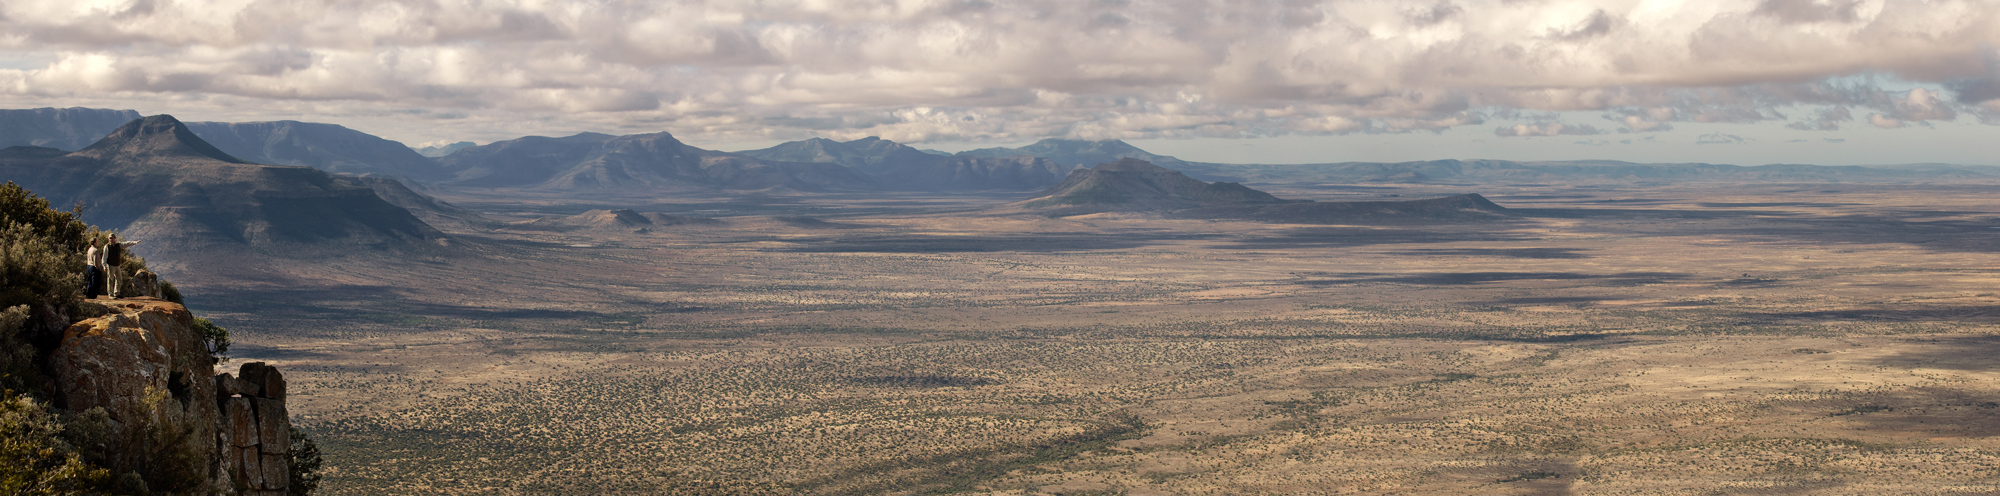 Landscape of the Great Karoo and location of Samara Private Game Reserve